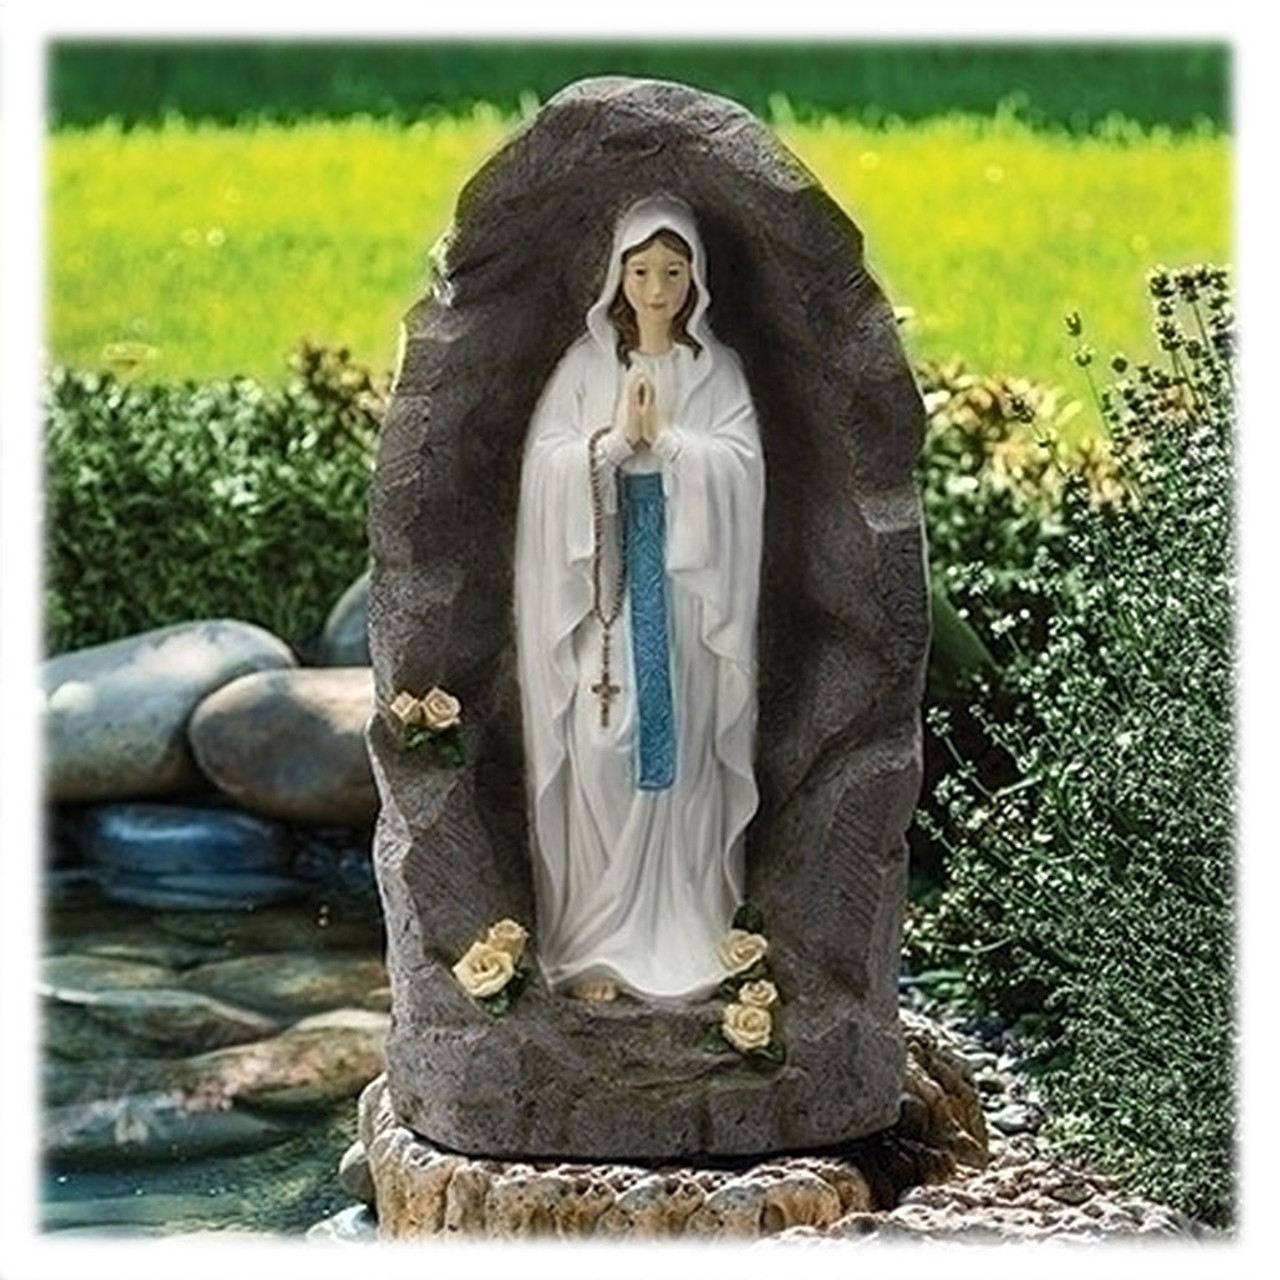 Our Lady of Lourdes Garden Statue 36 IN